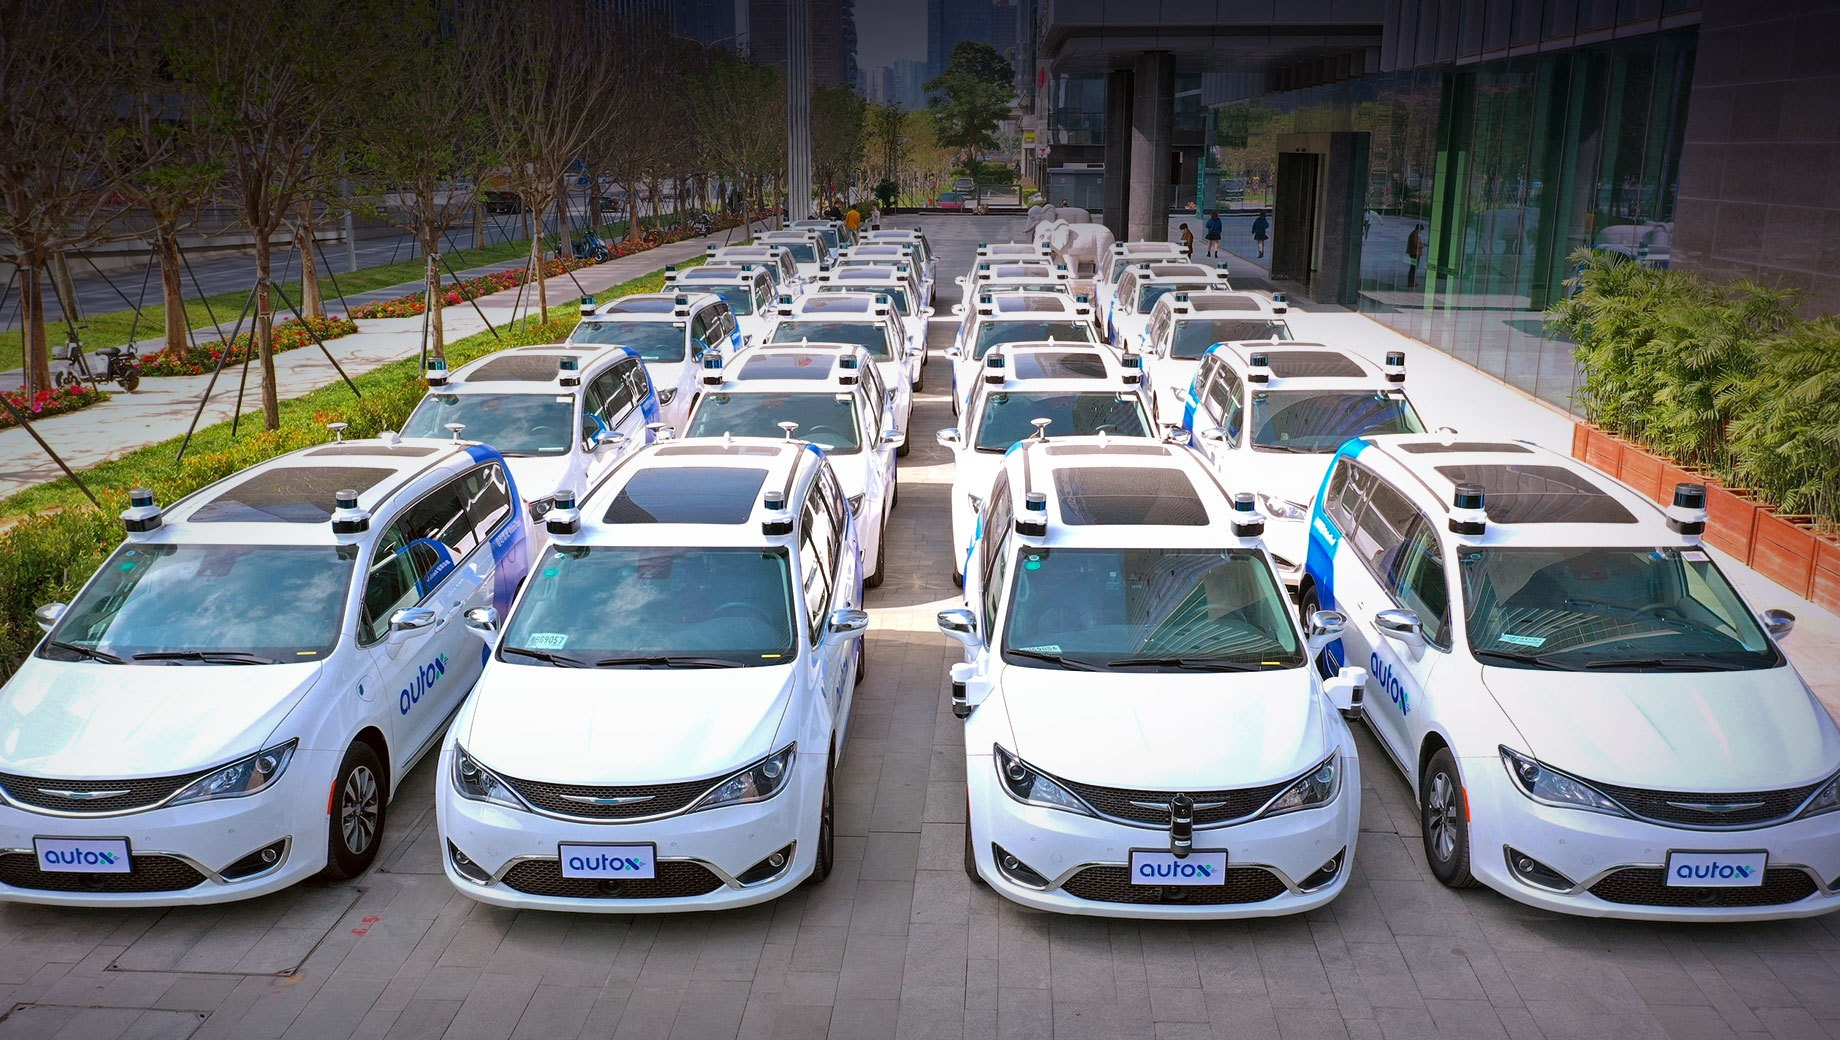 AutoX, a Chinese-American startup firm, has put several autonomous Chrysler Pacifica MPVs on public roads in Shenzhen, China. Interestingly enough, local authorities authorized the tests without drivers or any means of remote control.